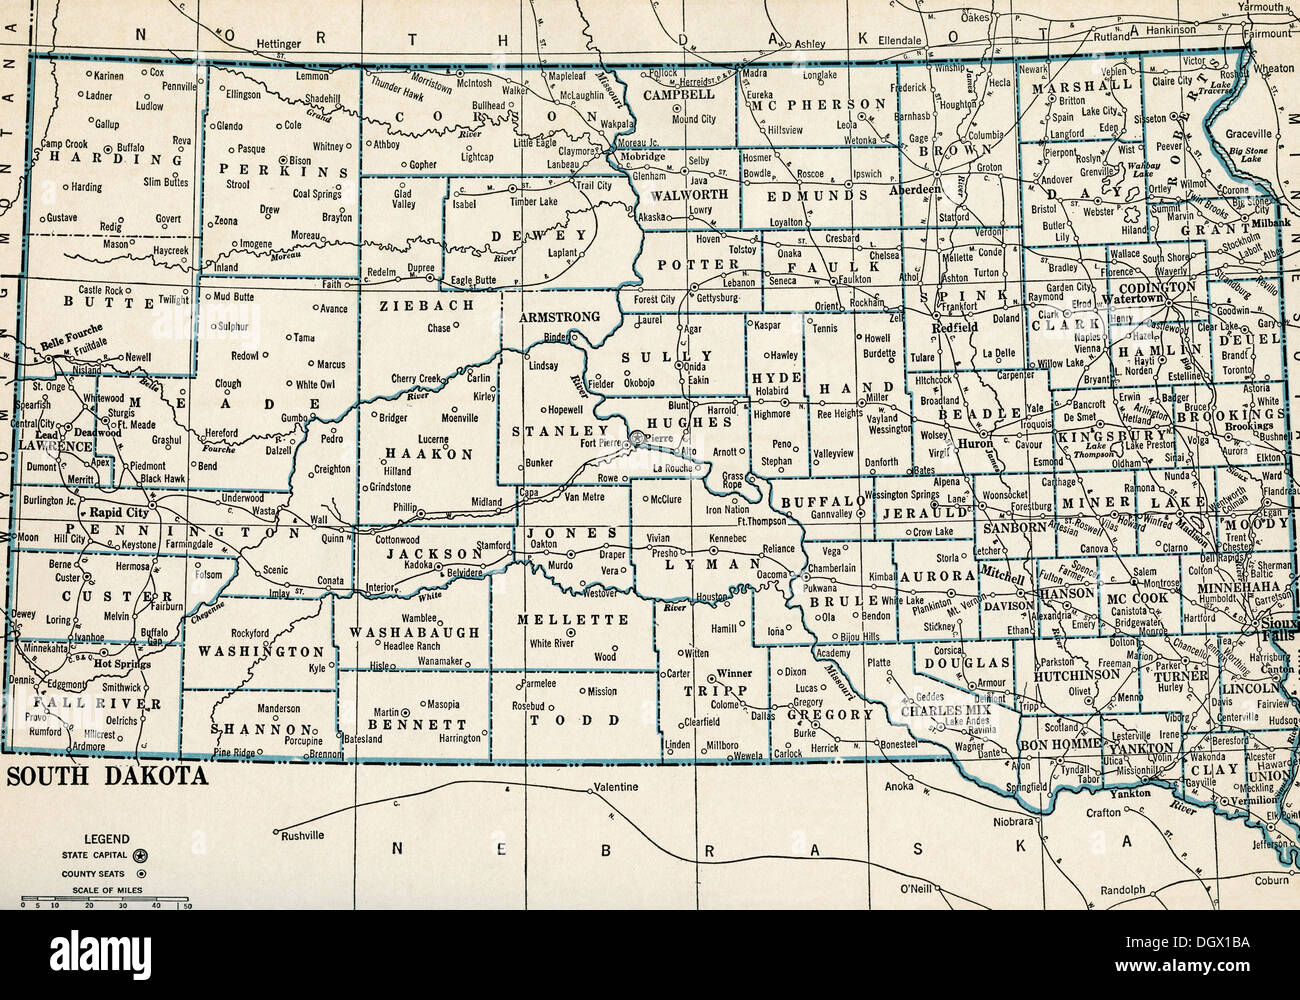 Old Map Of South Dakota S Stock Photo Royalty Free Image - Map of south dakota